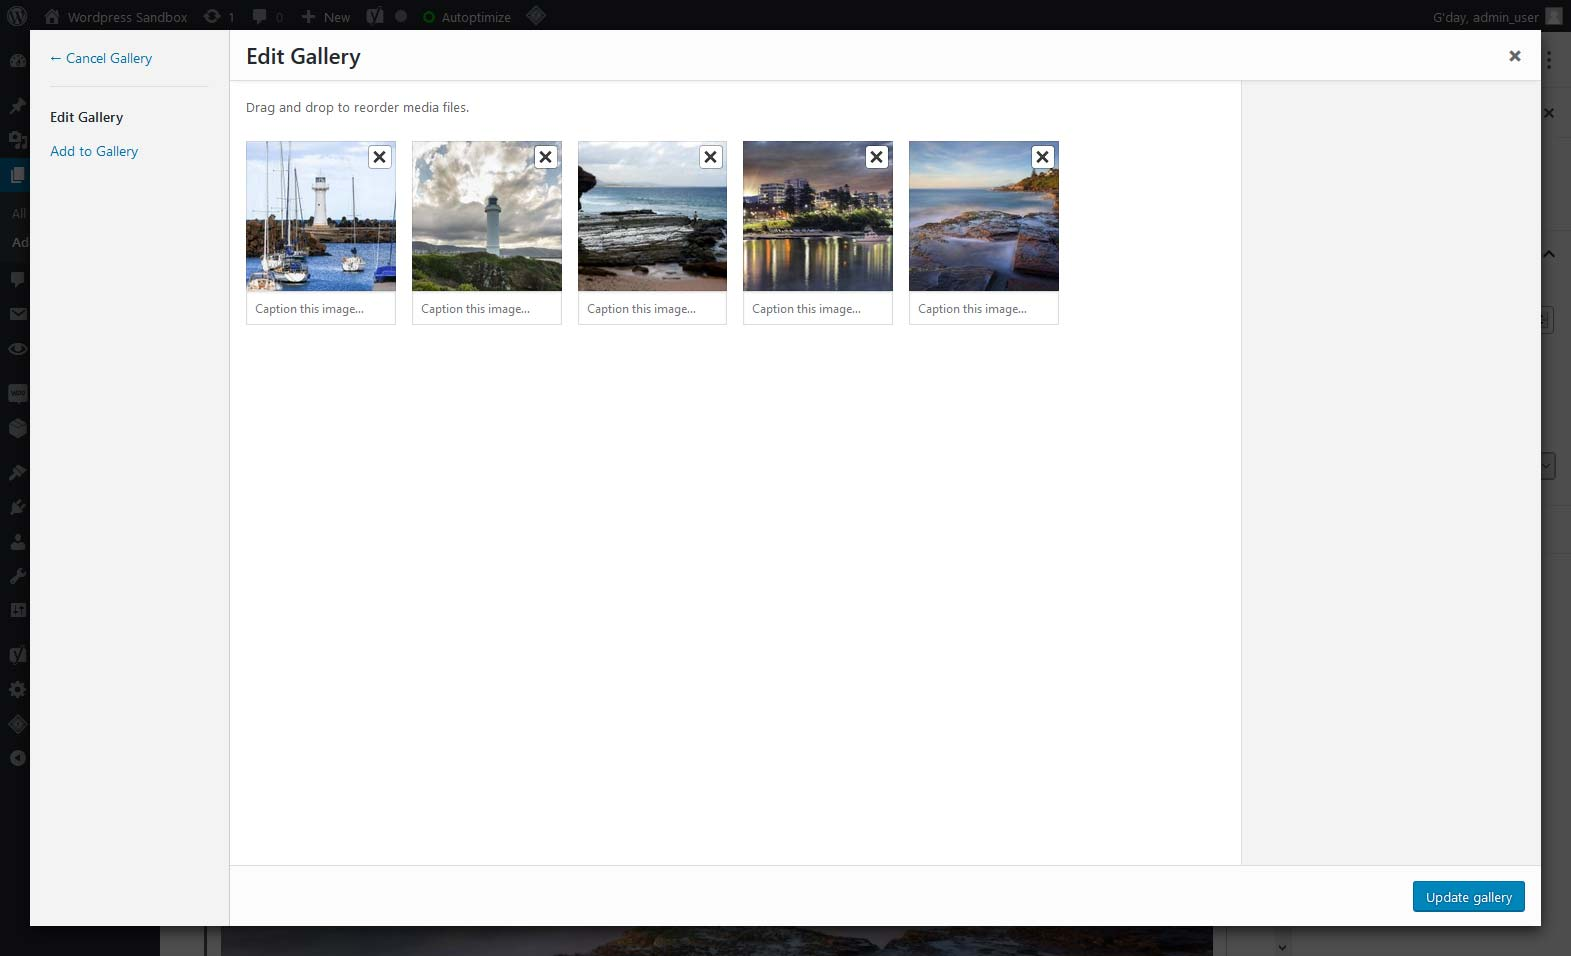 The Edit Gallery interface